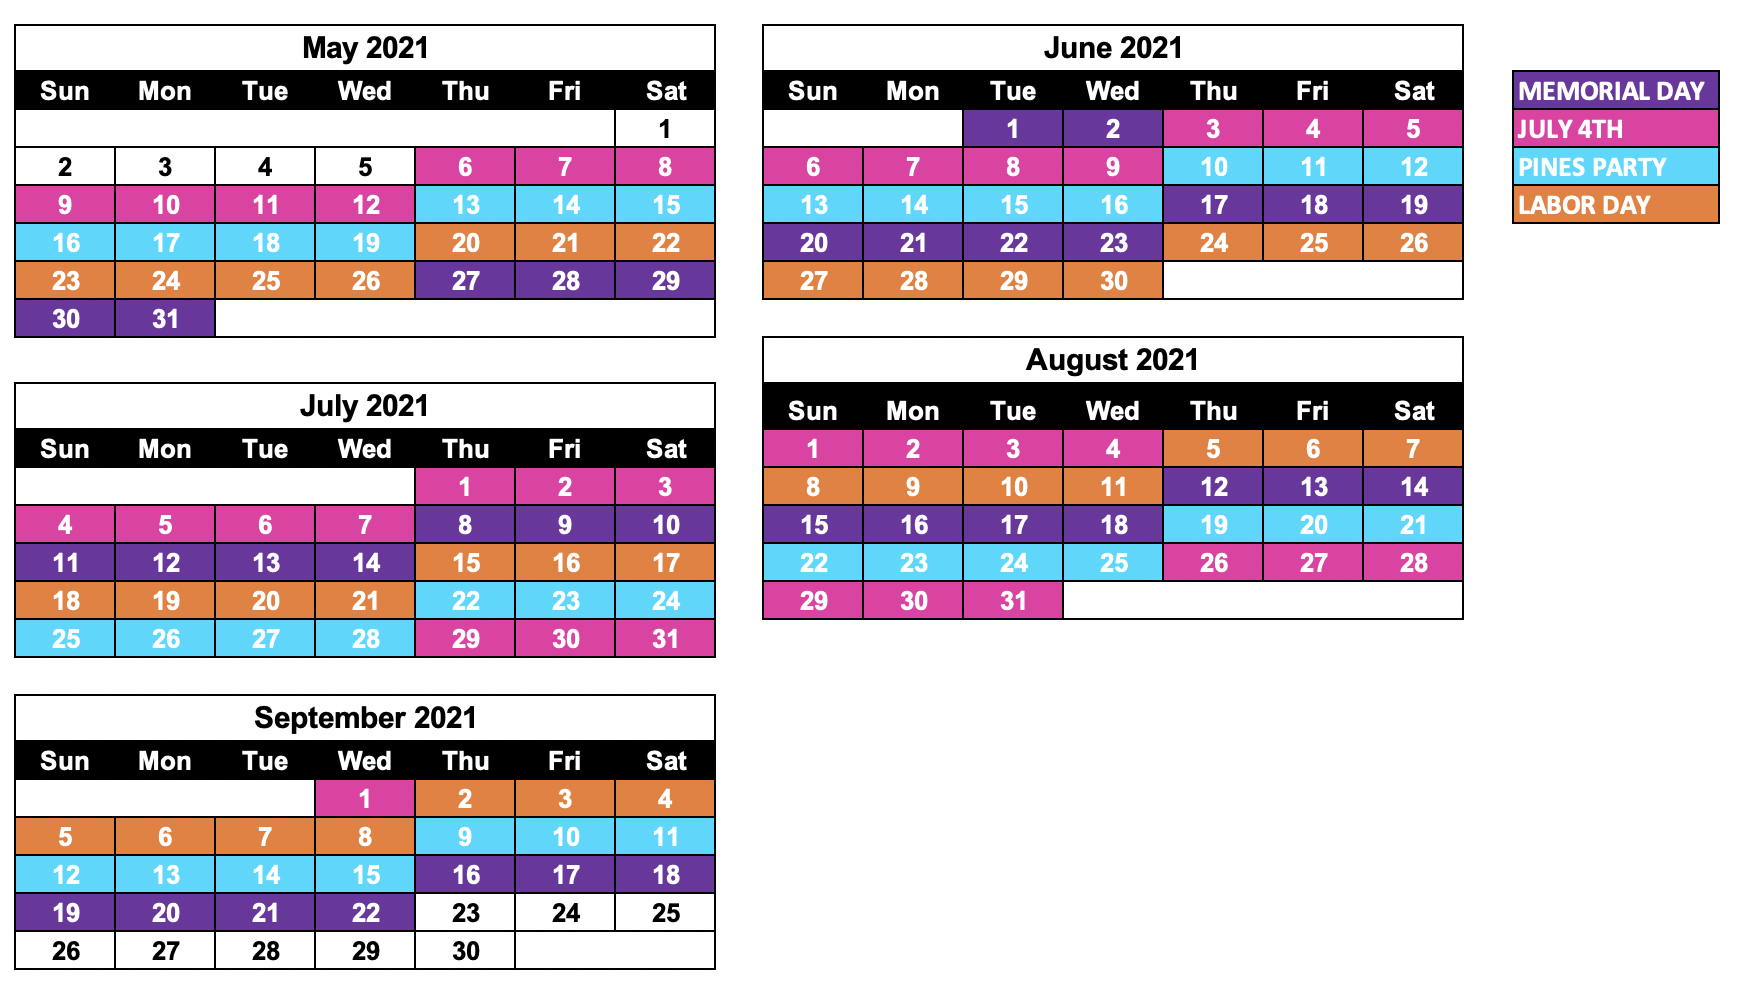 2021 SHARE CALENDAR DATES (subject to change)